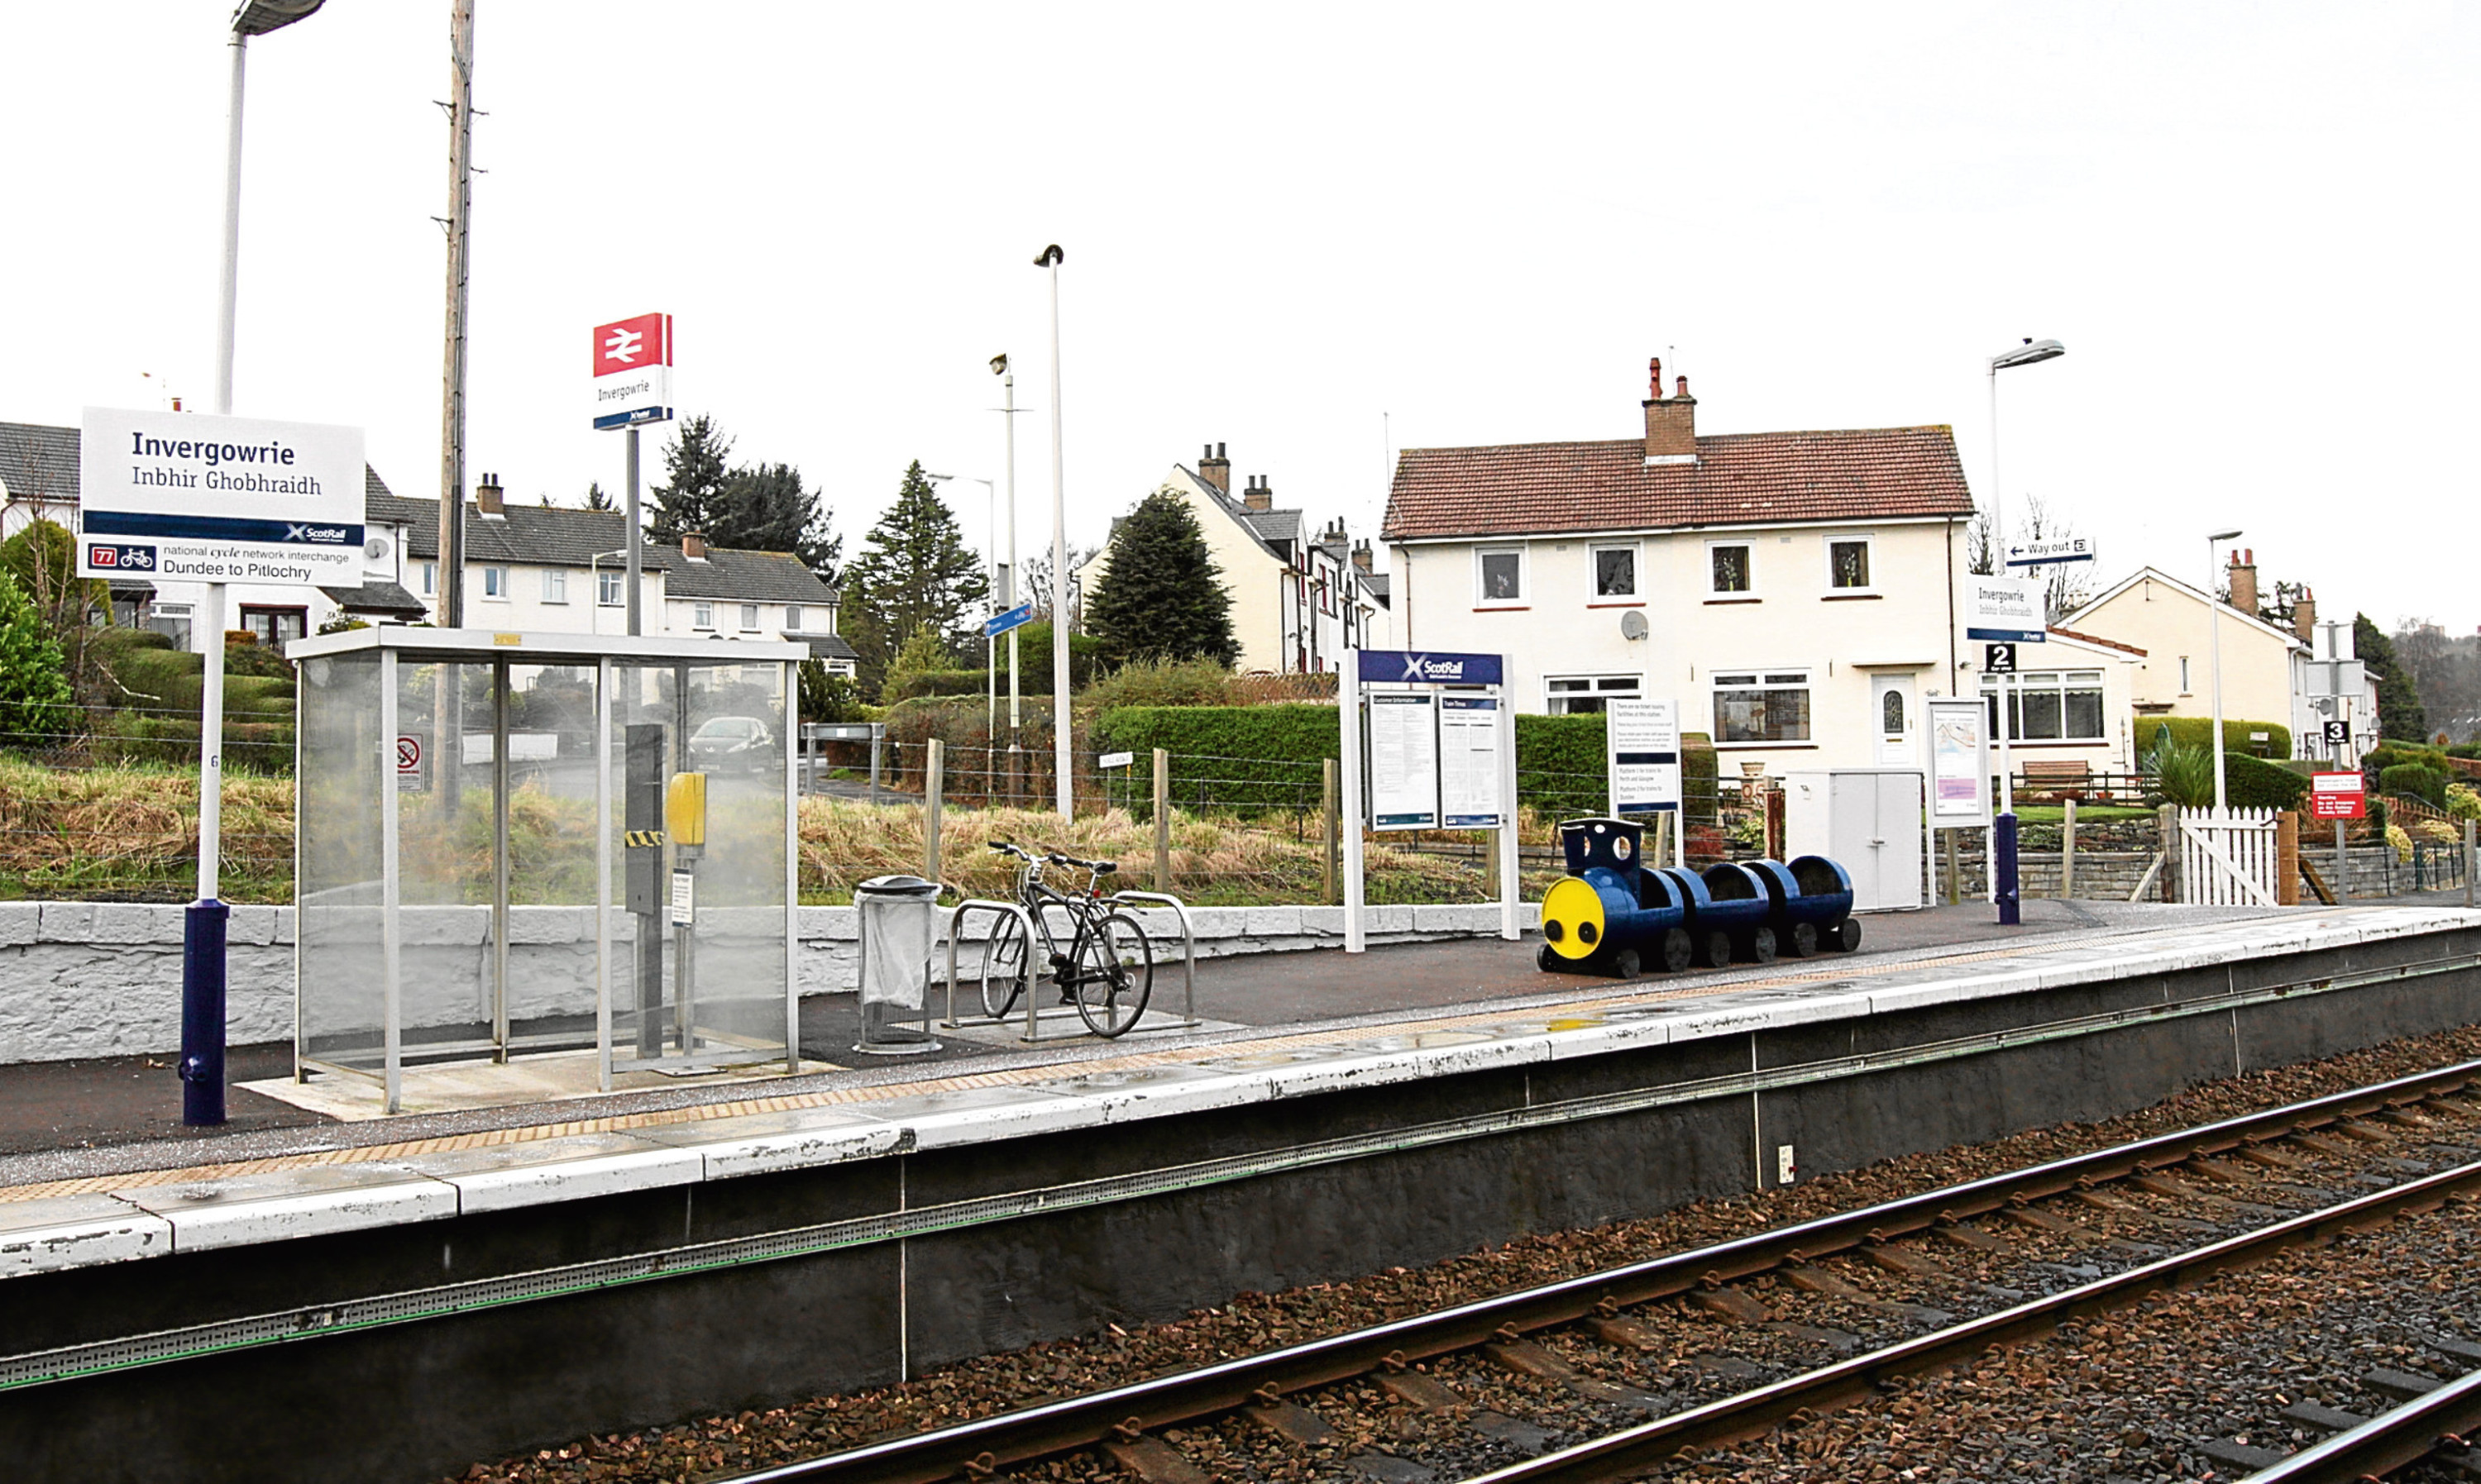 Invergowrie railway station is subject to a relocation proposal.